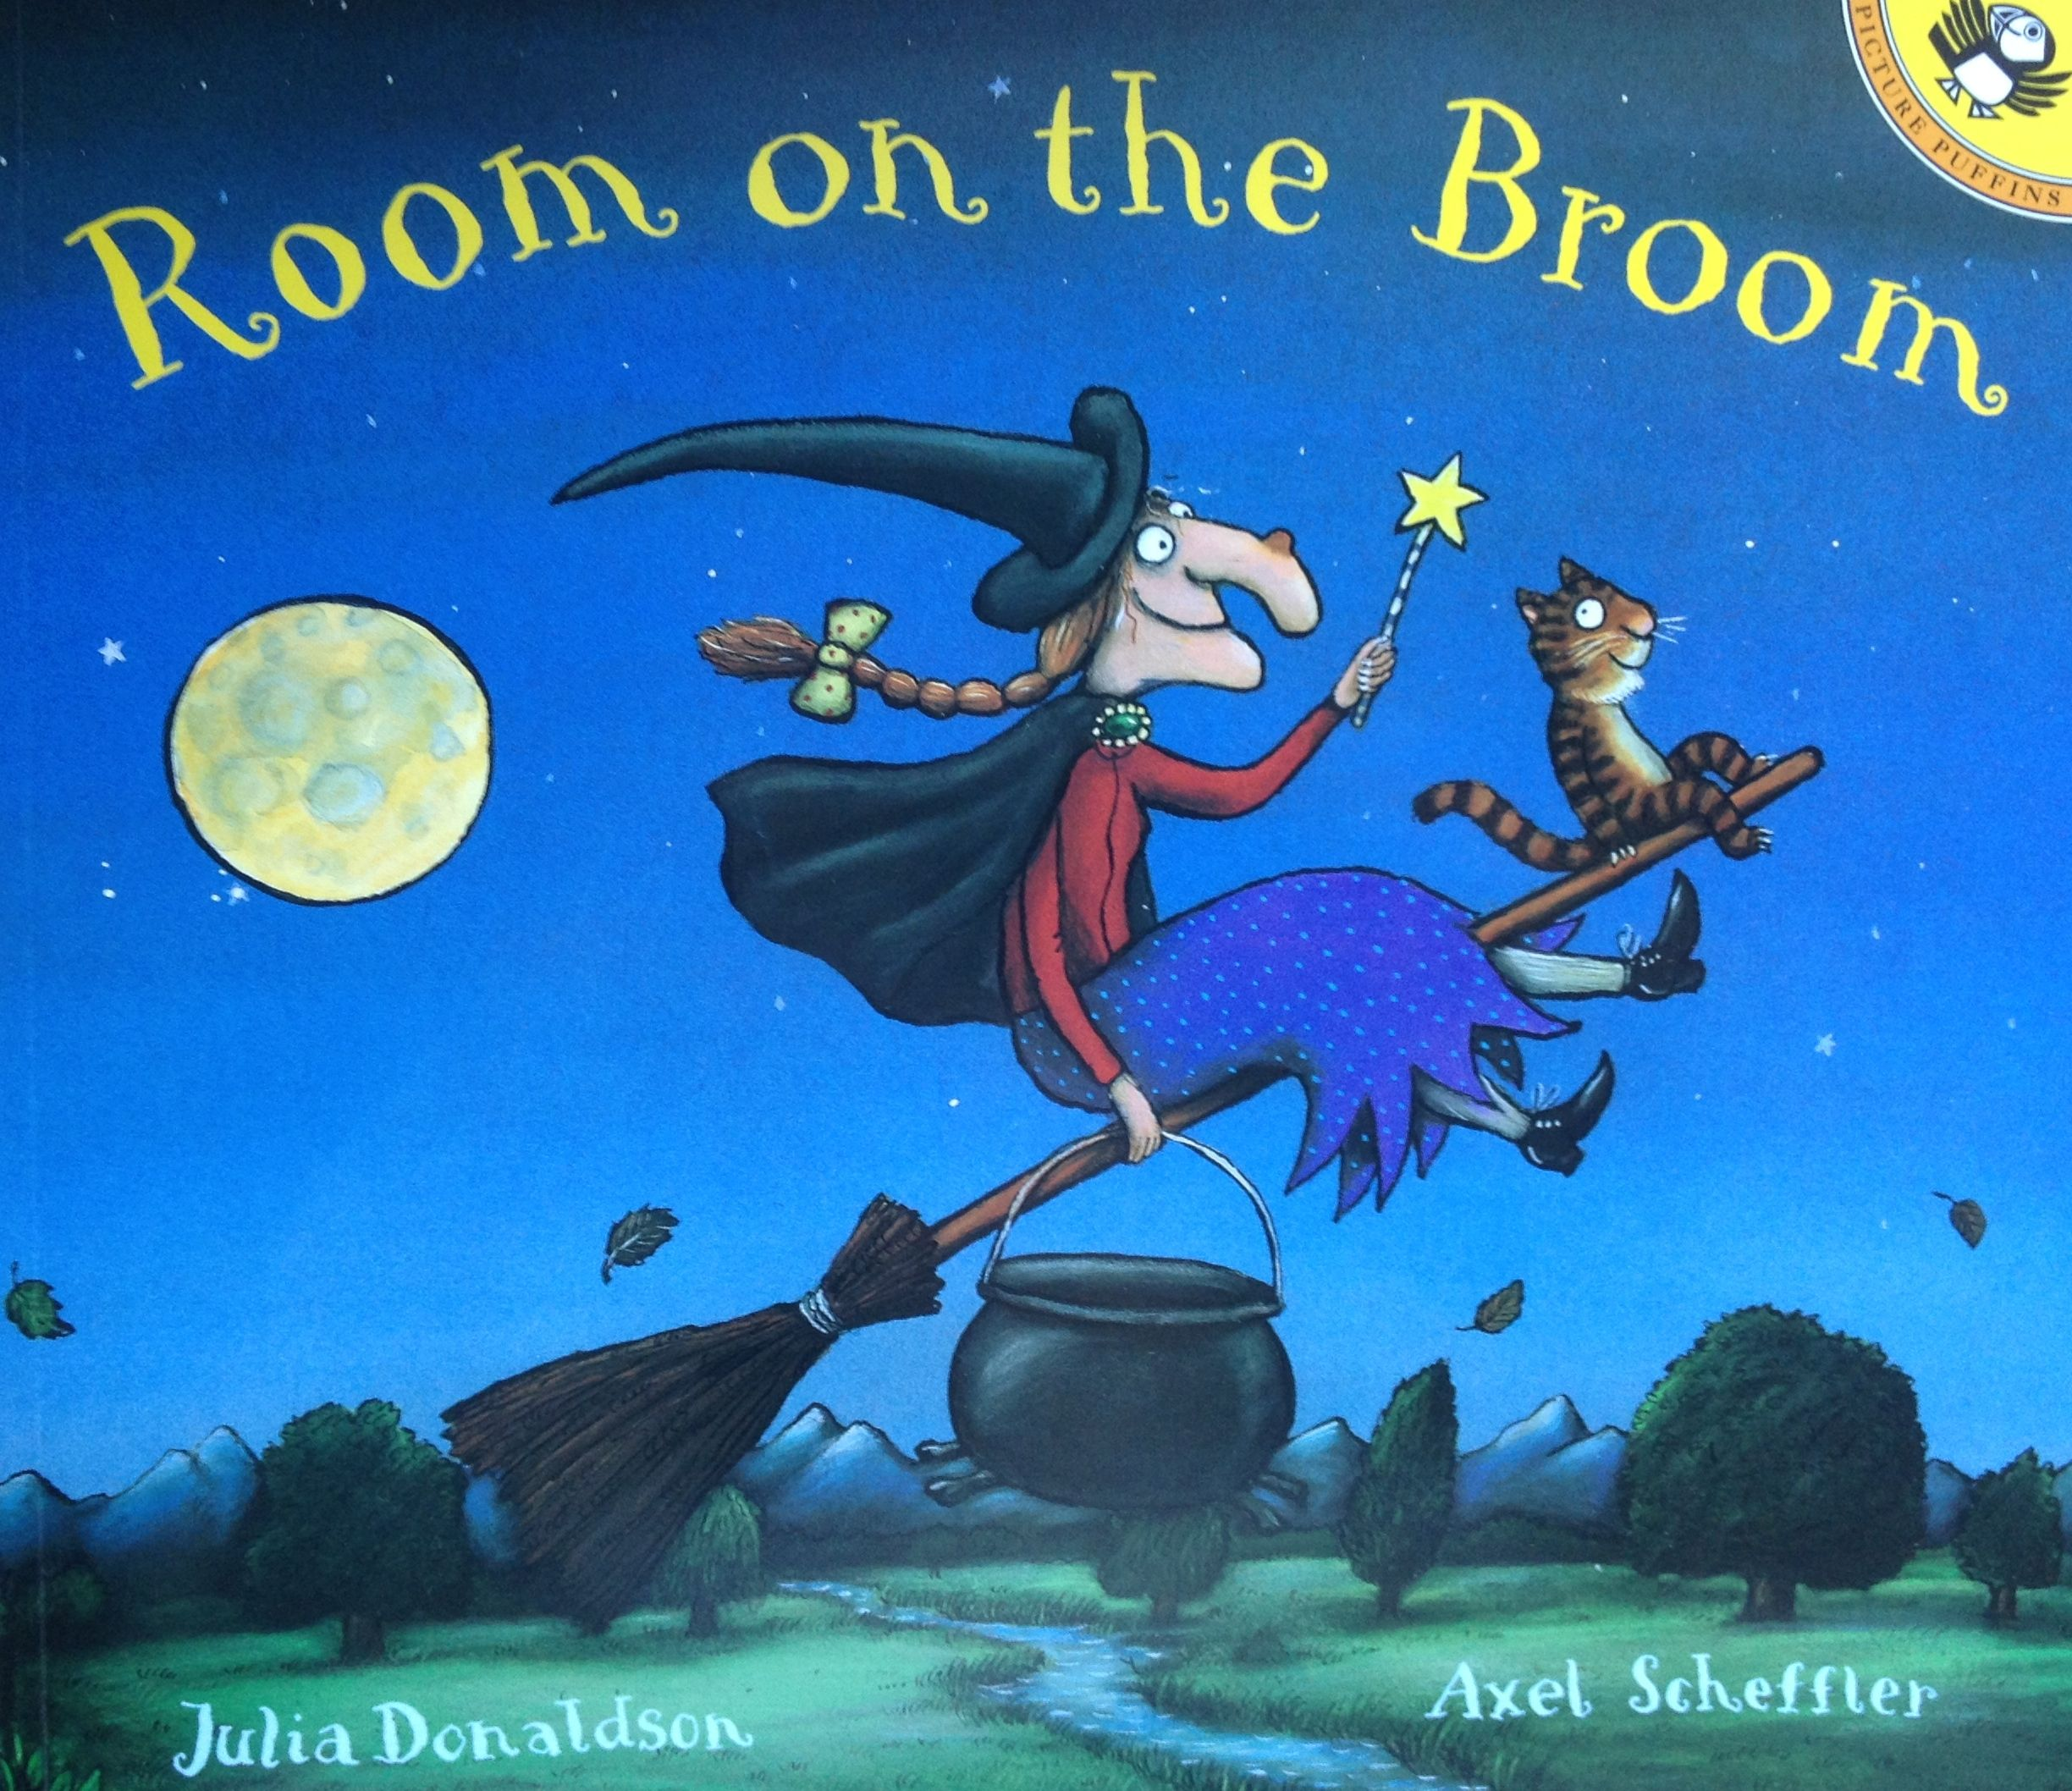 Room on the Broom. By Julia Donaldson and Axel Scheffler.